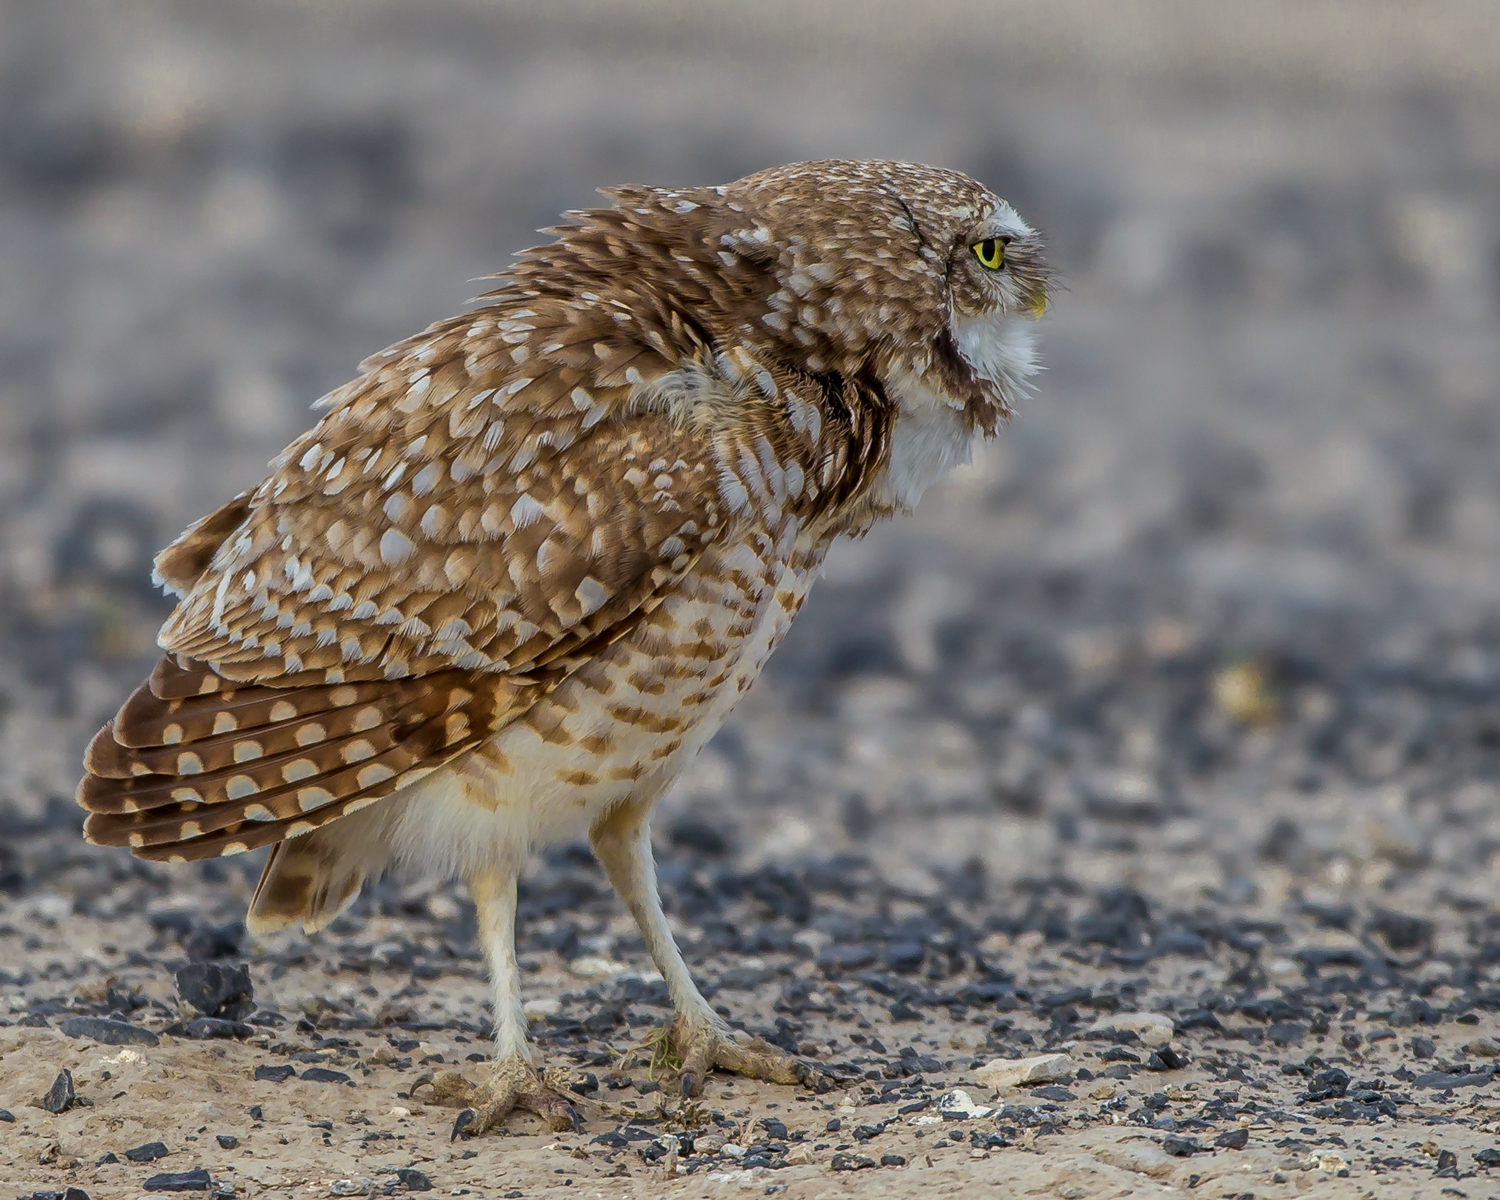 Athene-cunicularia-(Burrowing-Owl,-Chevêche-des-terriers)-male-mating-dance.png